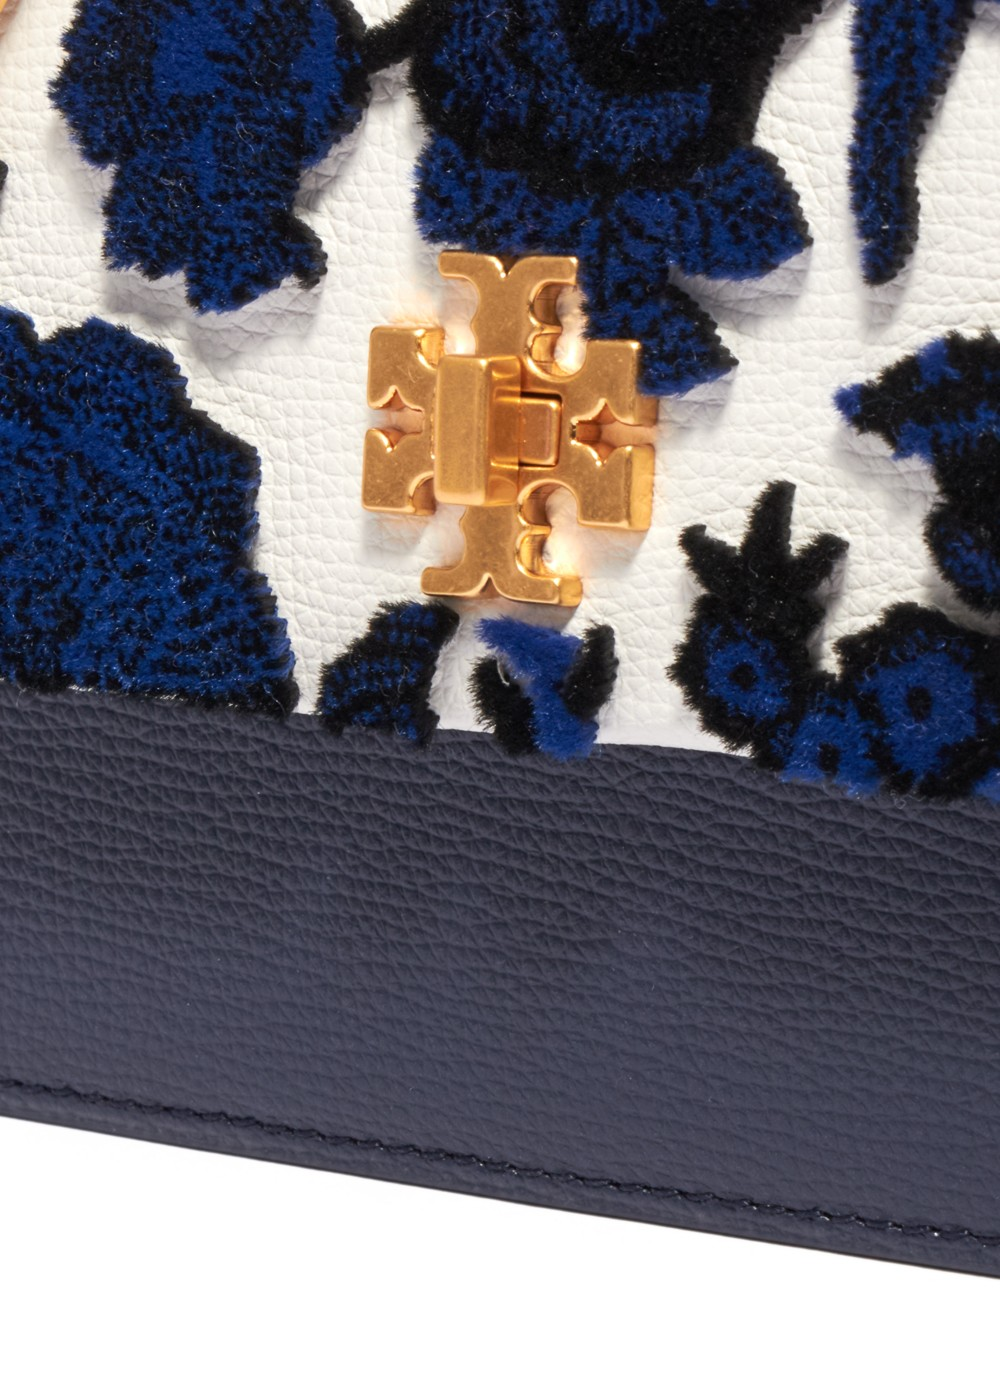 TORY BURCH|トリバーチ|KIRA|キラ|FIL COUPE SHOULDER BAG